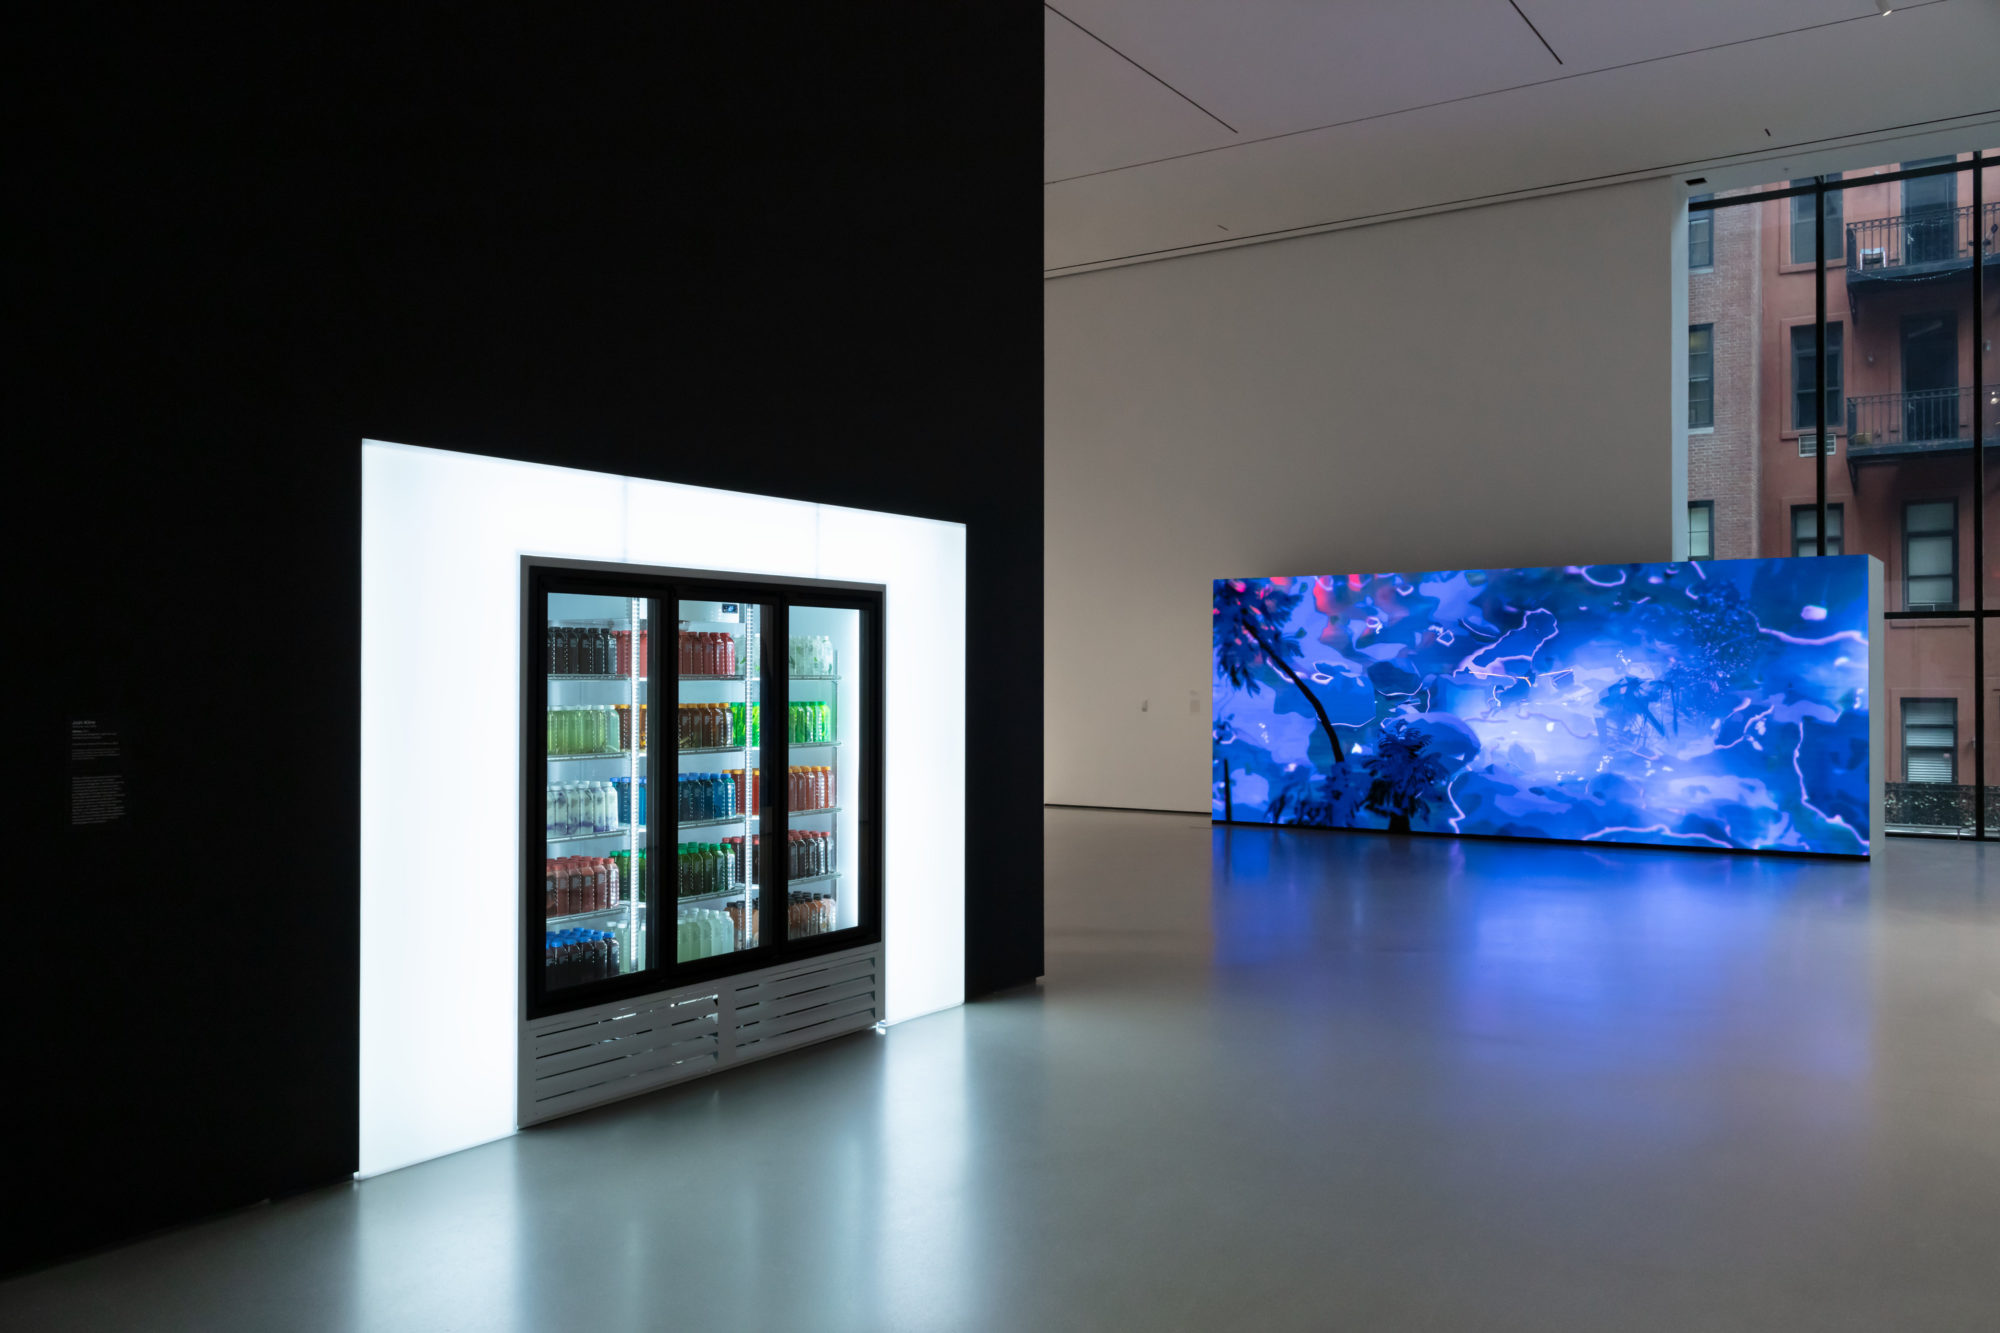 Installation view,  New Order: Art and Technology in the Twenty-First Century  at The Museum of Modern Art, New York (March 17 – June 15, 2019). Digital image © 2019 The Museum of Modern Art, New York. Photo: Jonathan Muzikar.